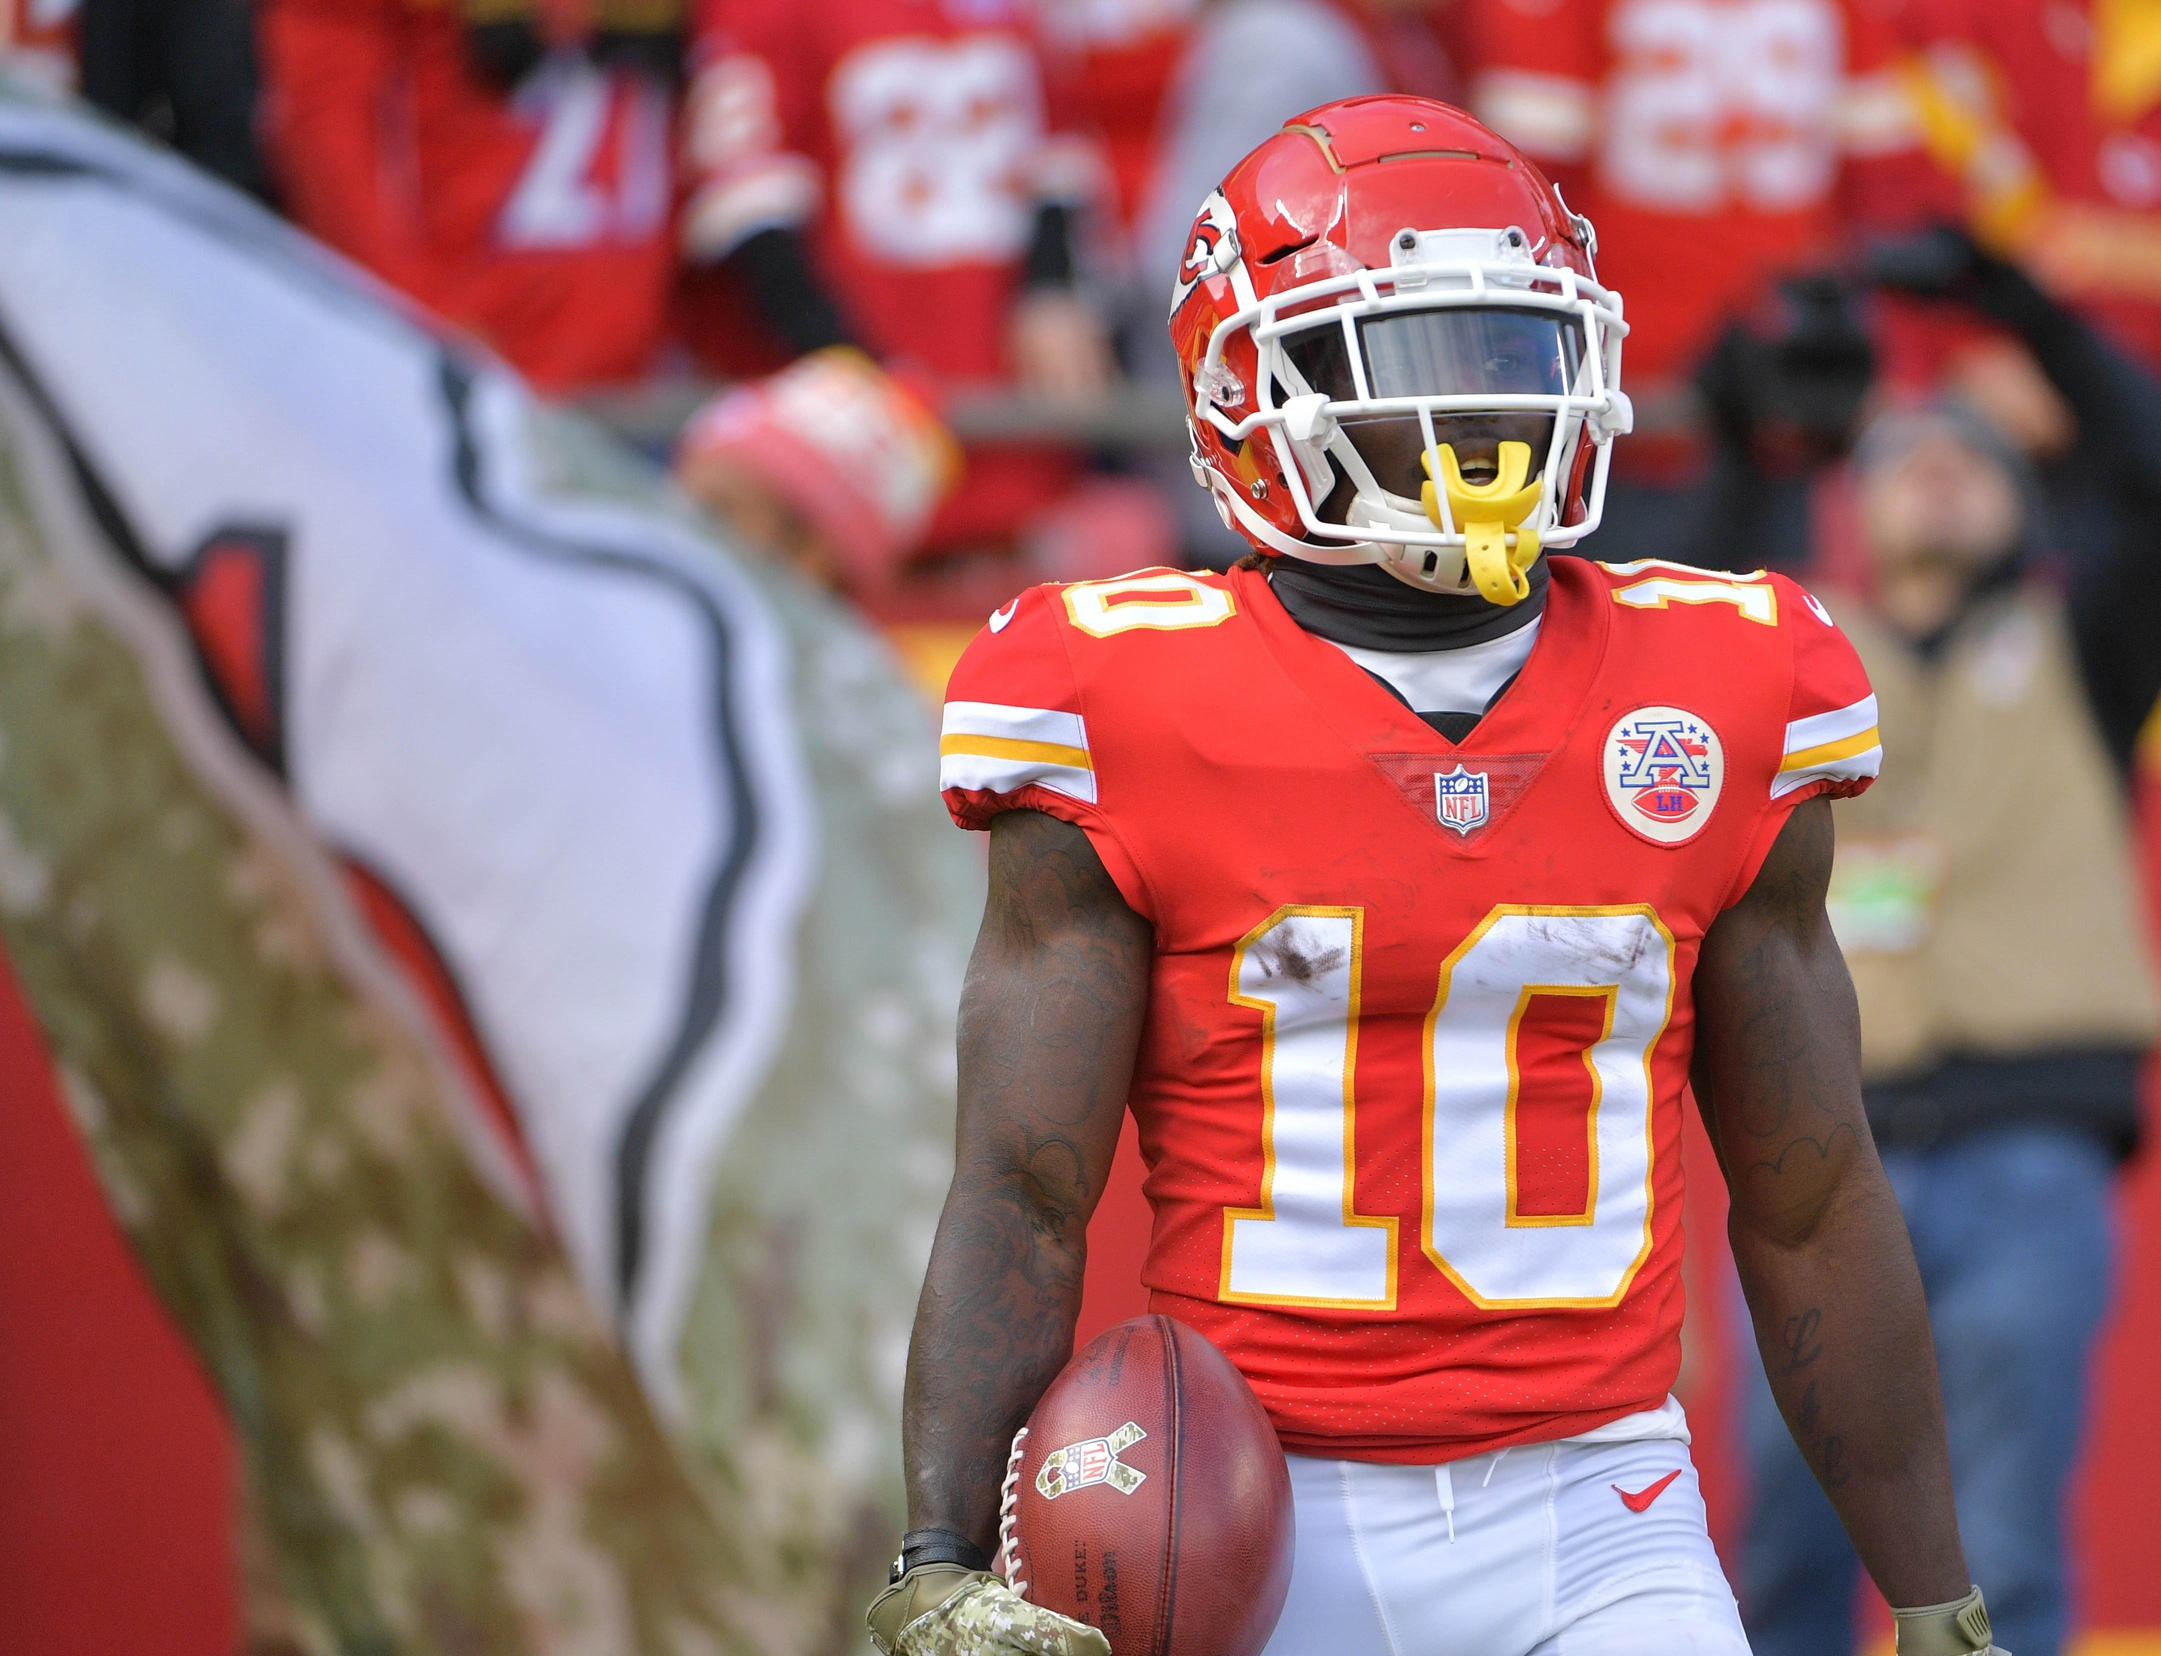 Kansas City Chiefs wide receiver Tyreek Hill reportedly under investigation  for alleged battery involving son ab496c830